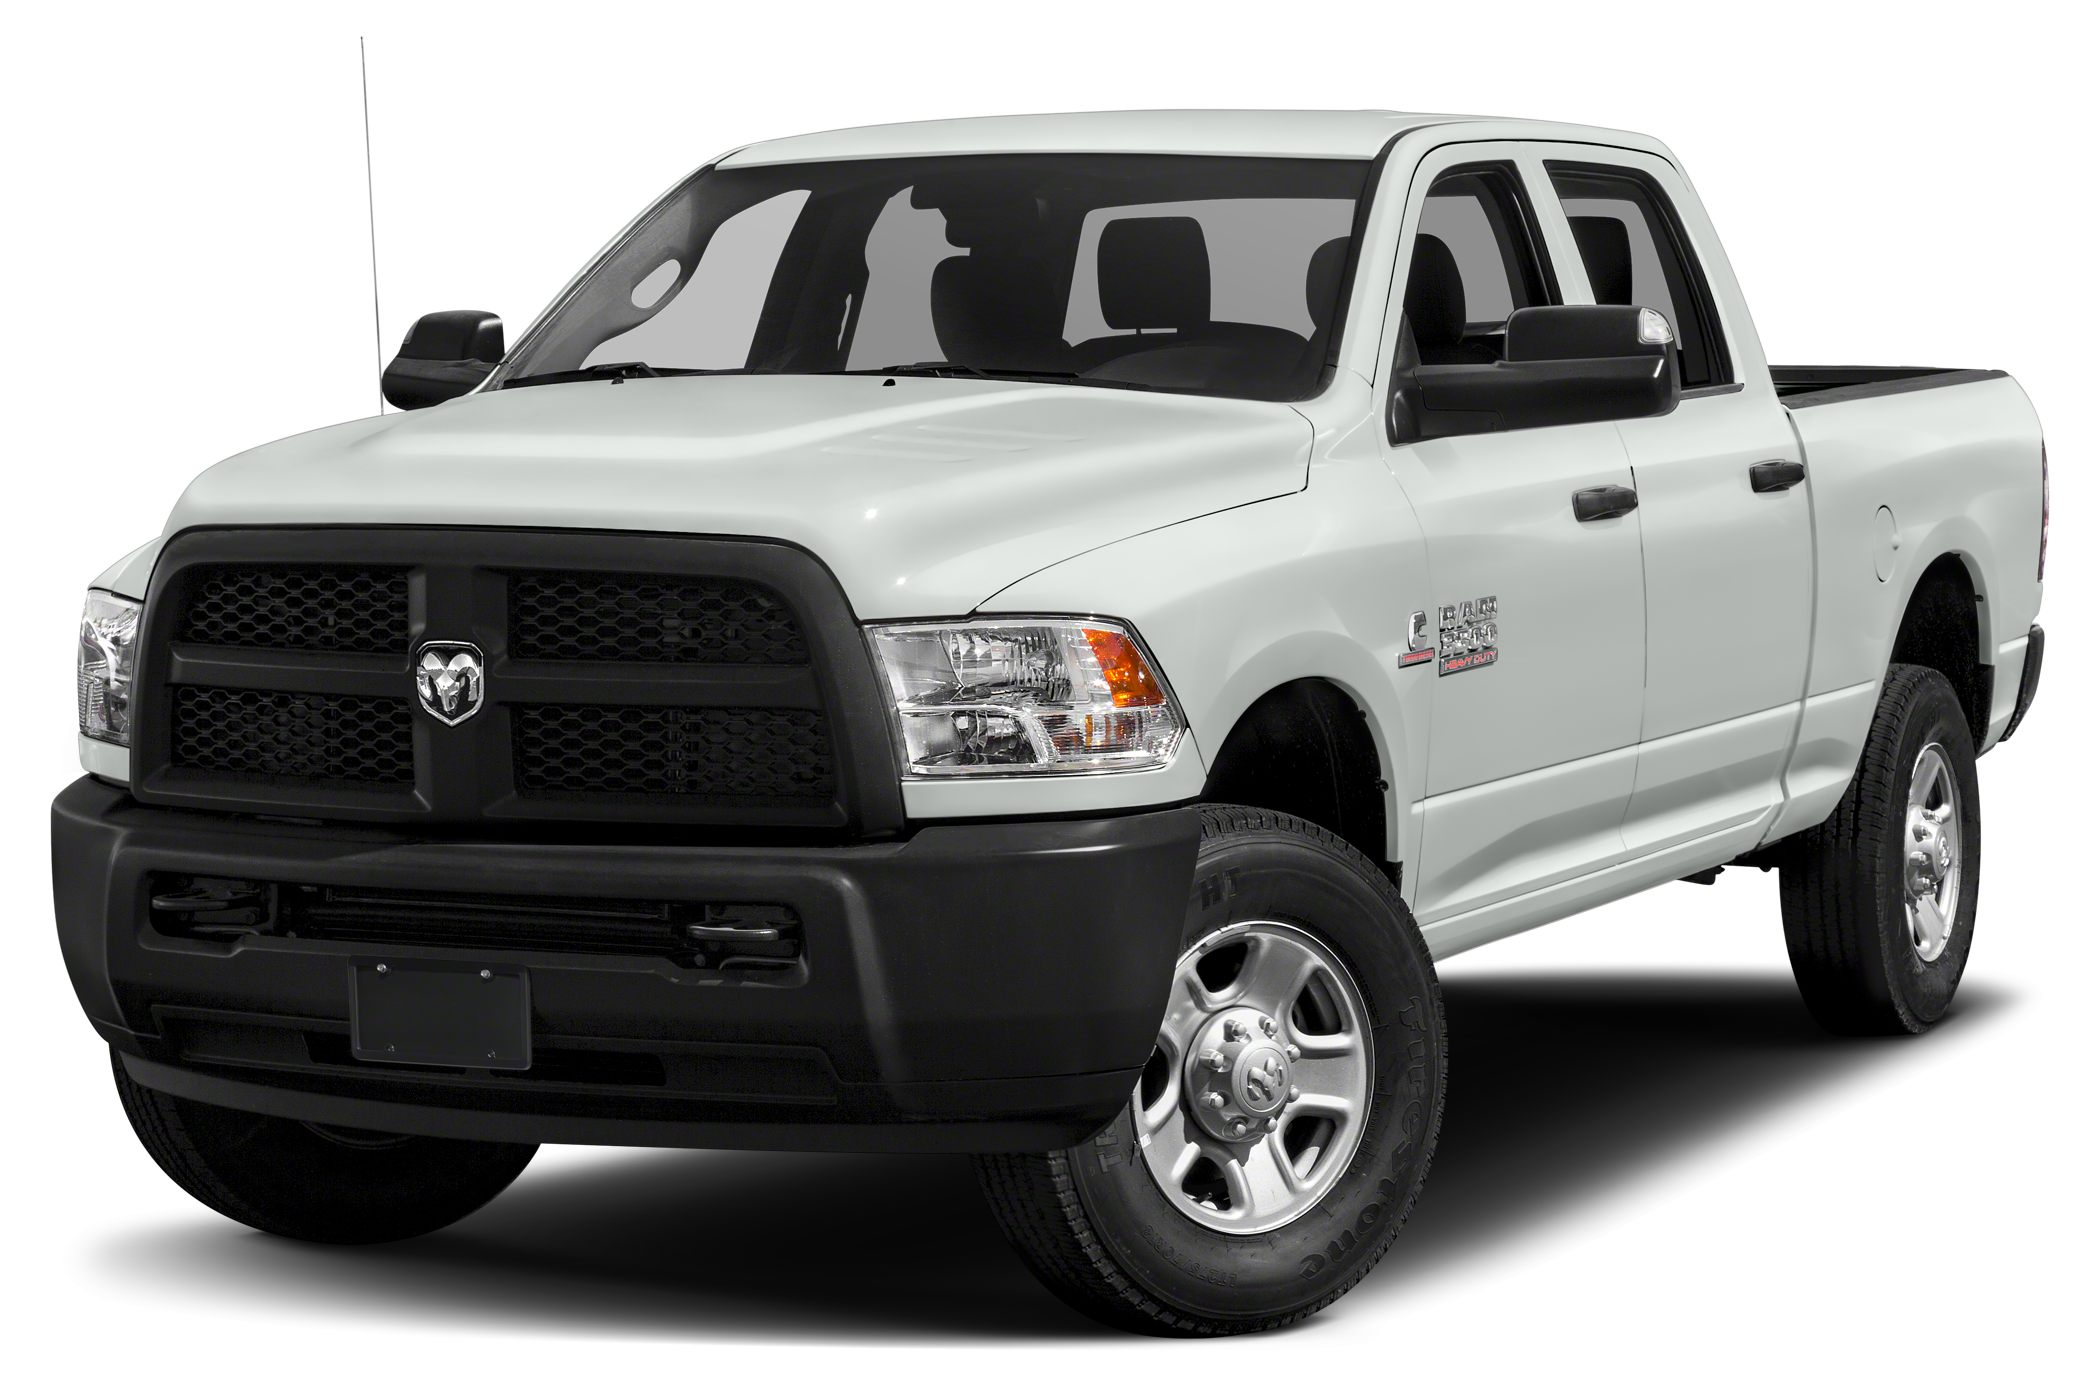 2017 RAM 3500 Tradesman 4WD Diesel Long Bed Who could say no to a truly wonderful truck like th